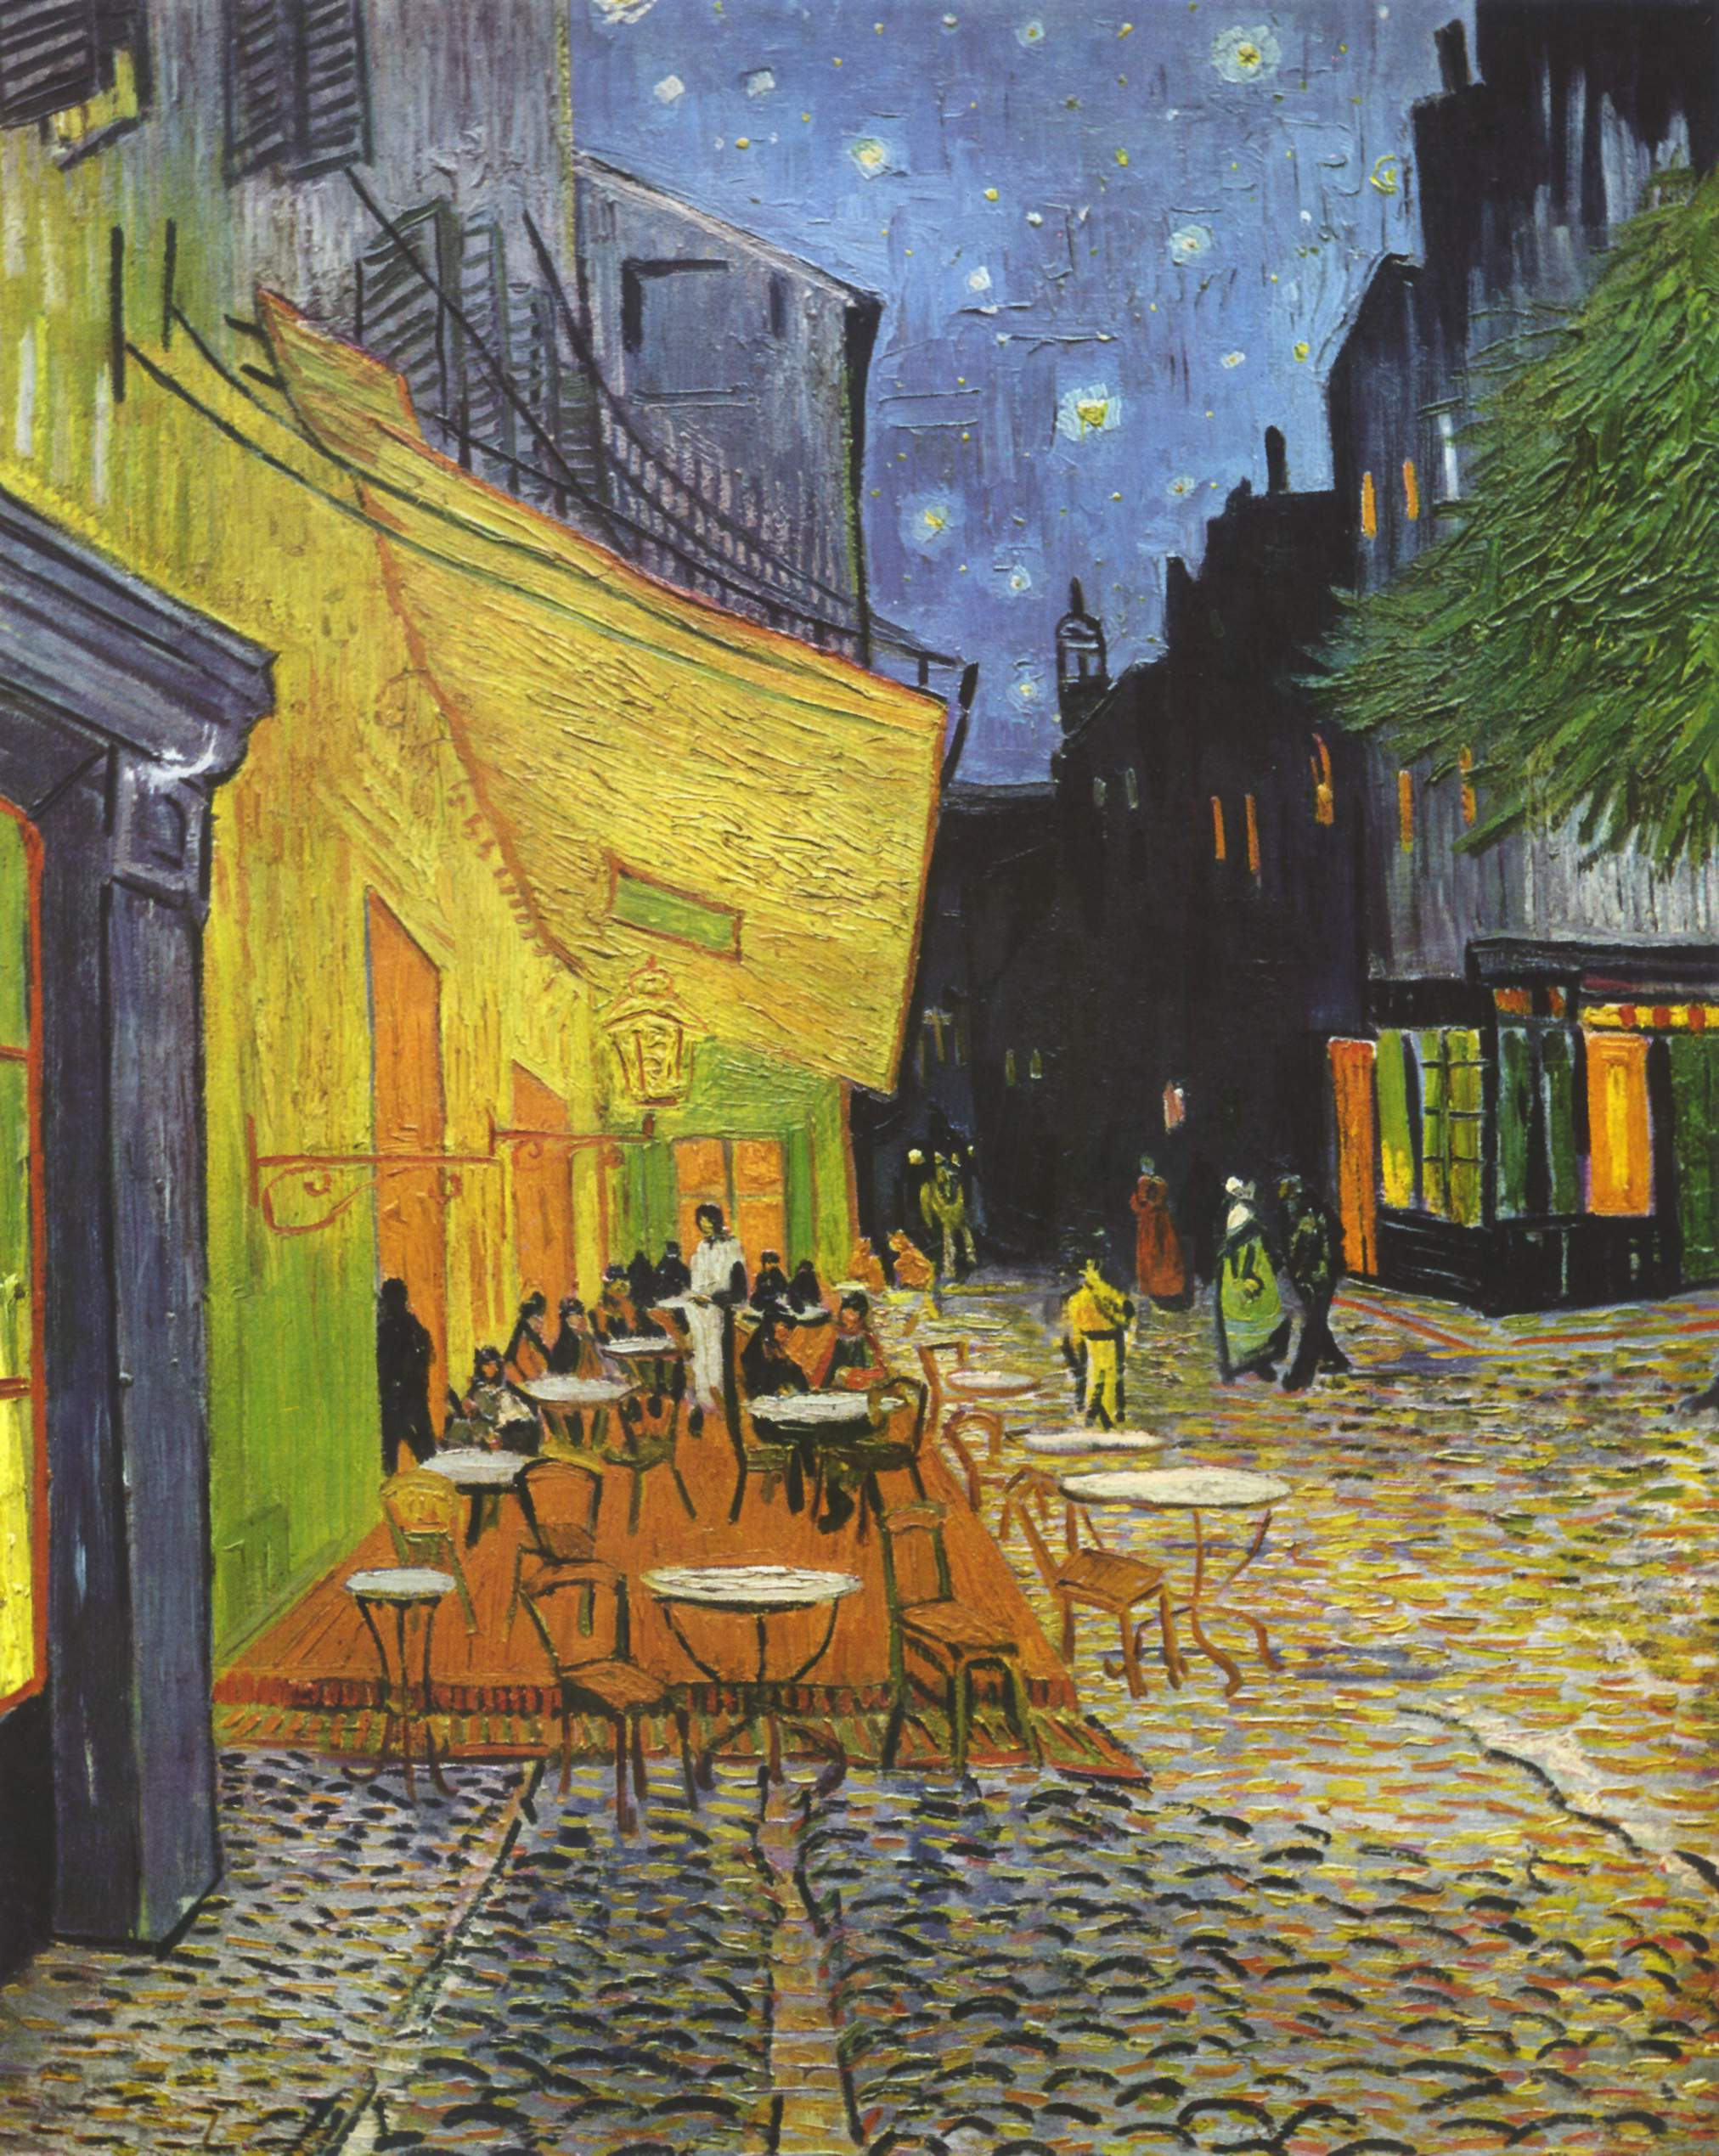 http://www.parisprovencevangogh.com/wp-content/uploads/2010/10/van-gogh-cafe-terrace-at-night.jpg